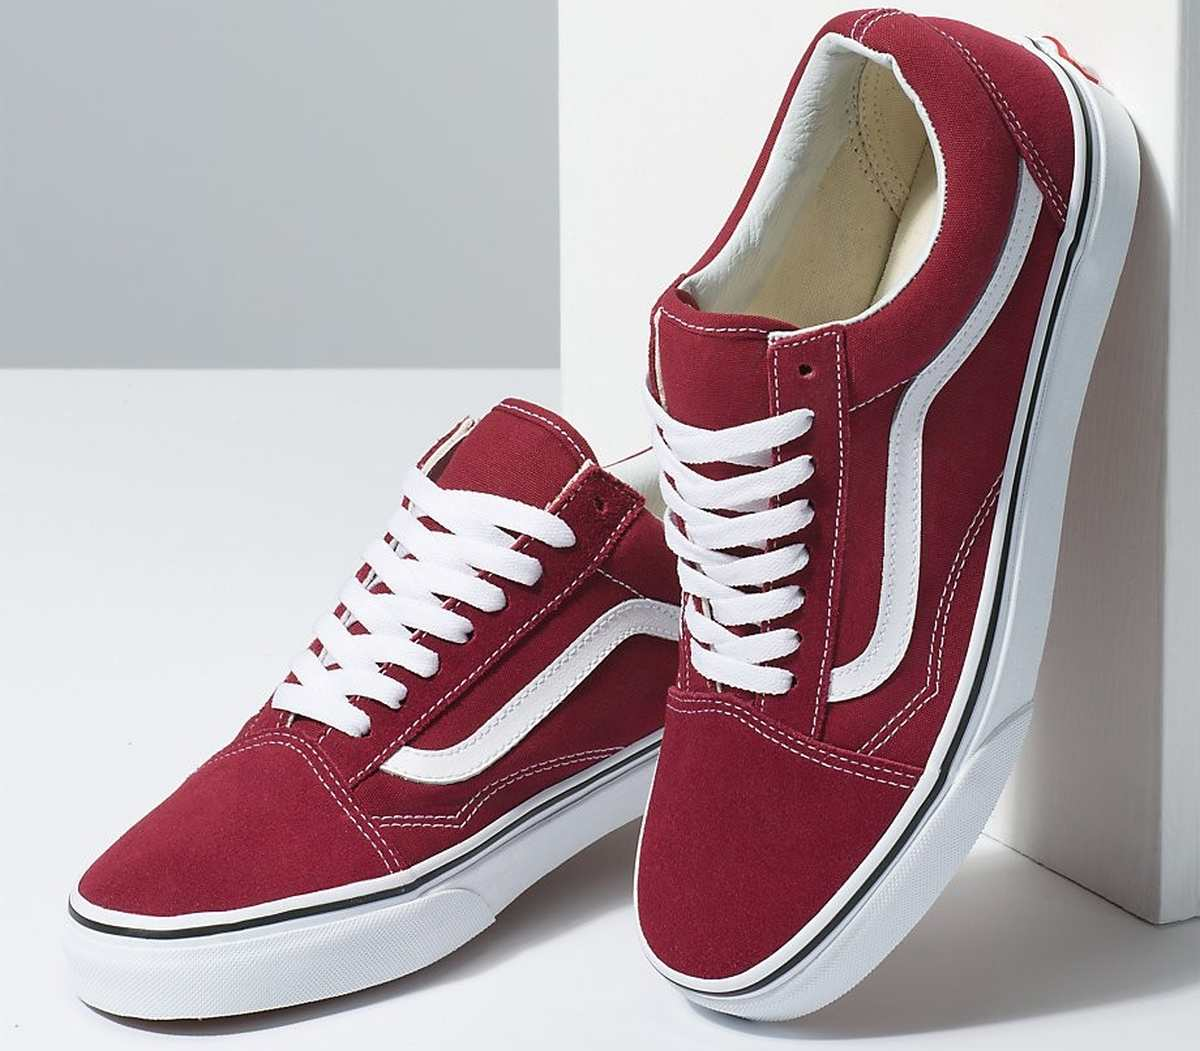 Top 10 Bordeaux Rode Sneakers Dames 3